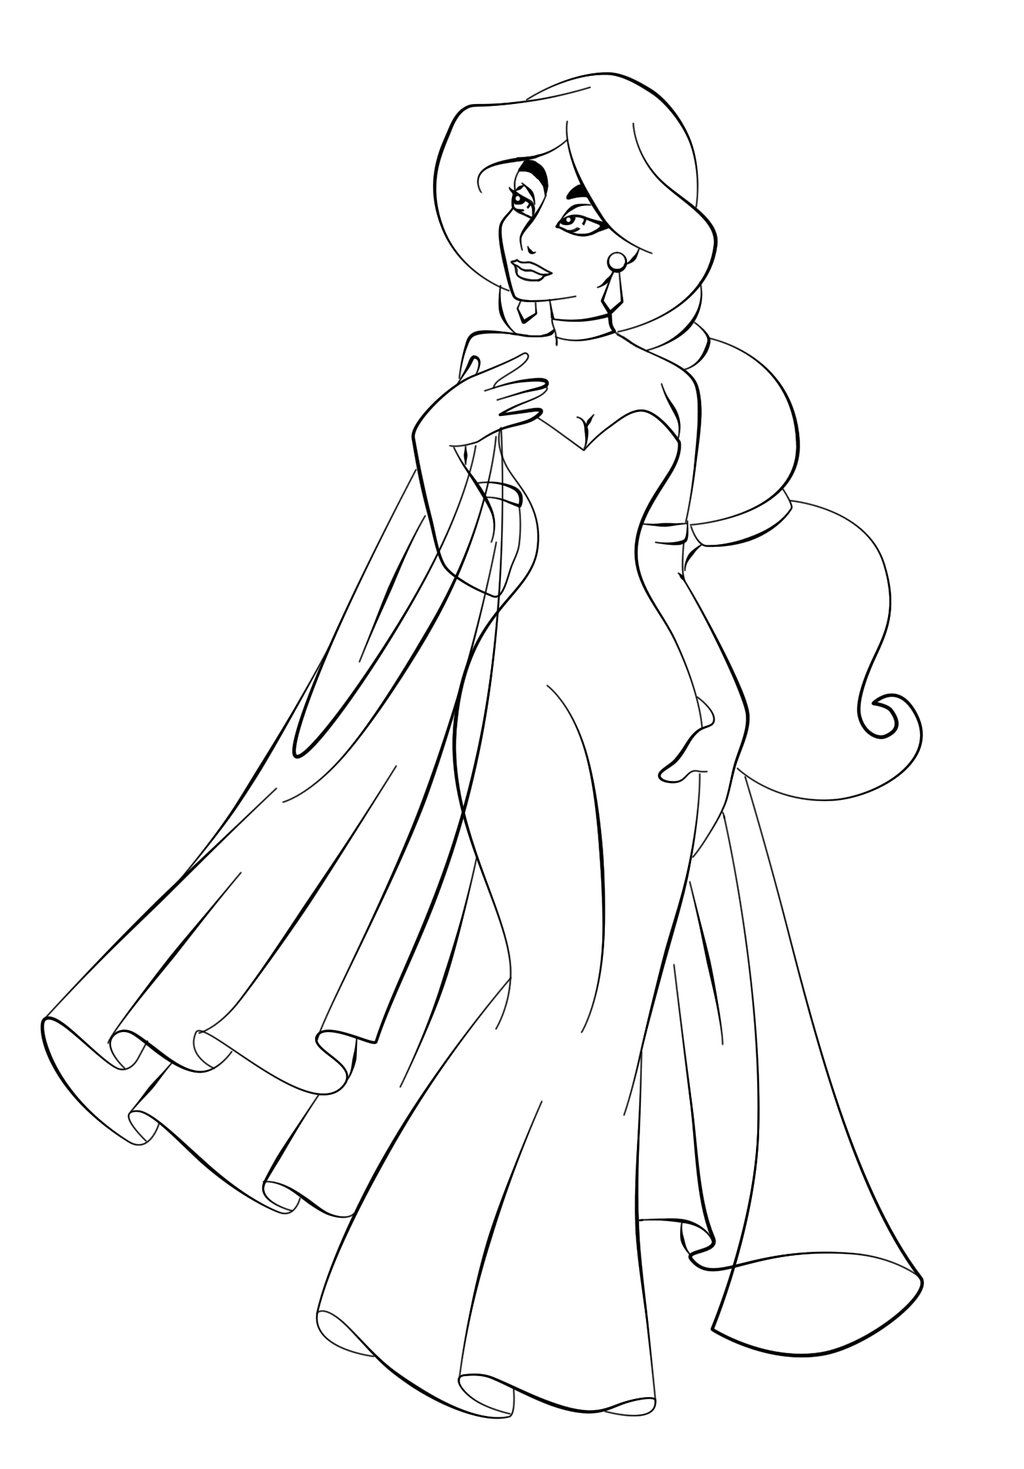 Full Page Princess Coloring Pages